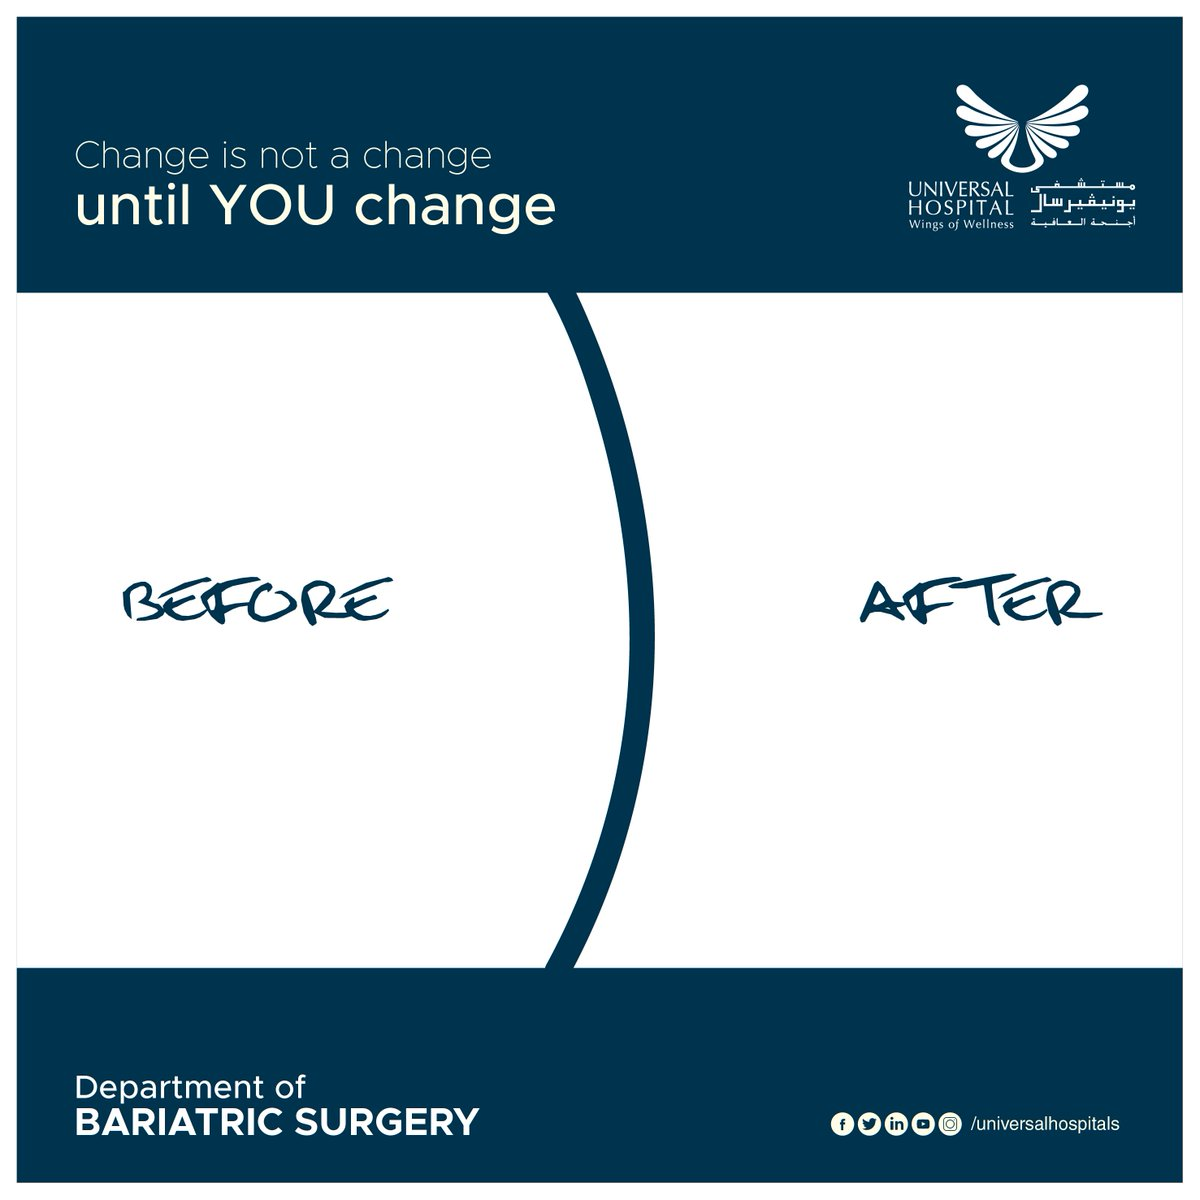 The Department of Bariatric Surgery at Universal Hospital has a wide range of services to help you lose weight and become your best self. Your weight loss journey is unique, and we will develop a plan with you that is sustainable, healthy and effective on weight loss.  #obesity